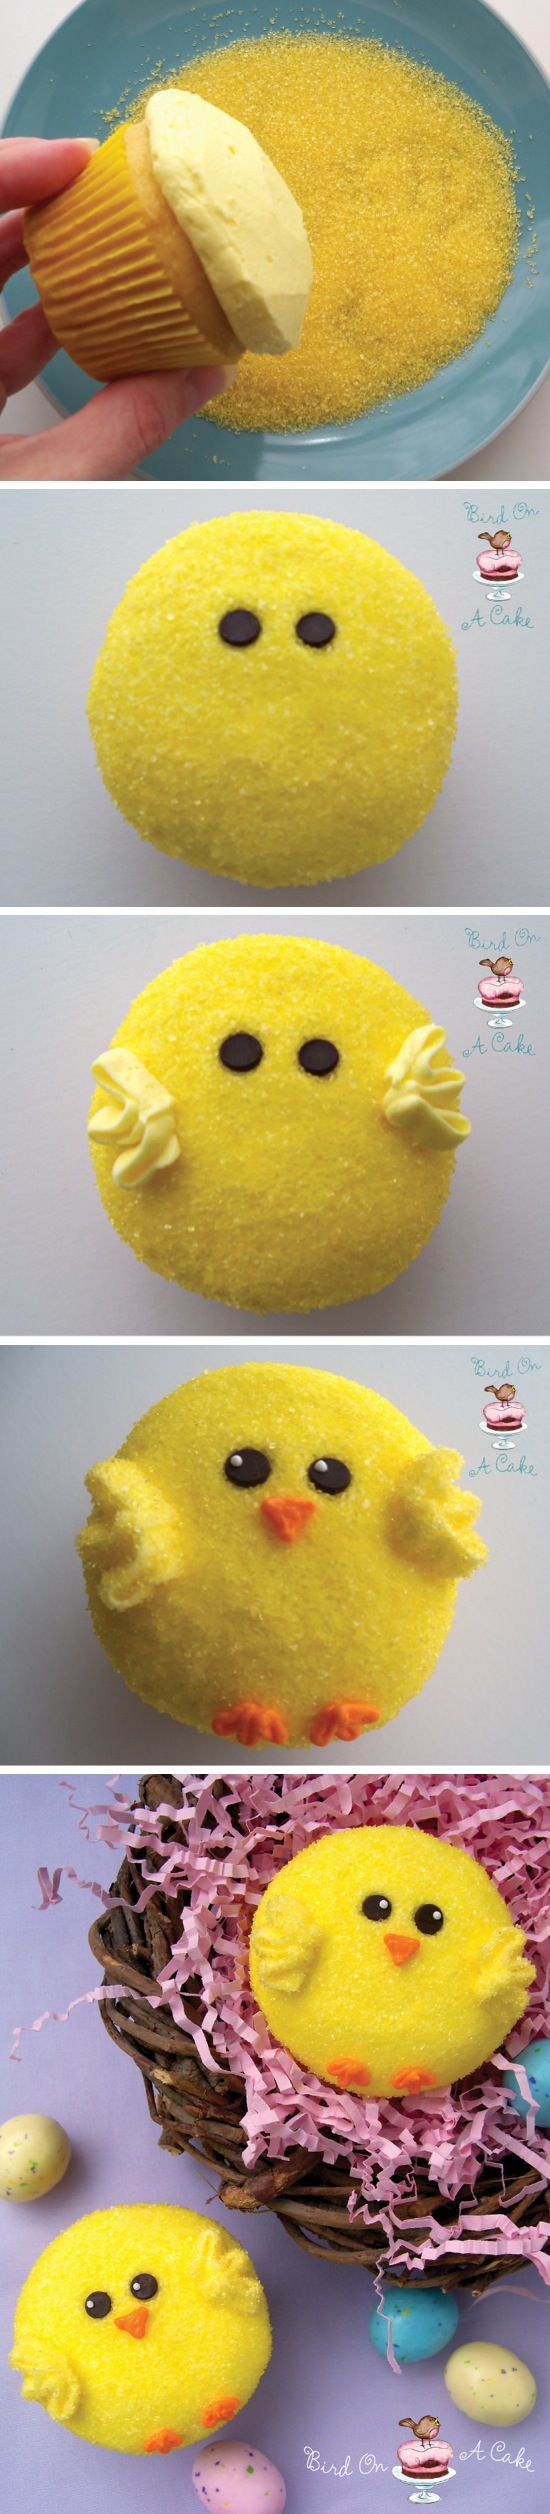 Easter Chick Cupcakes--Supplies list and instructions included.